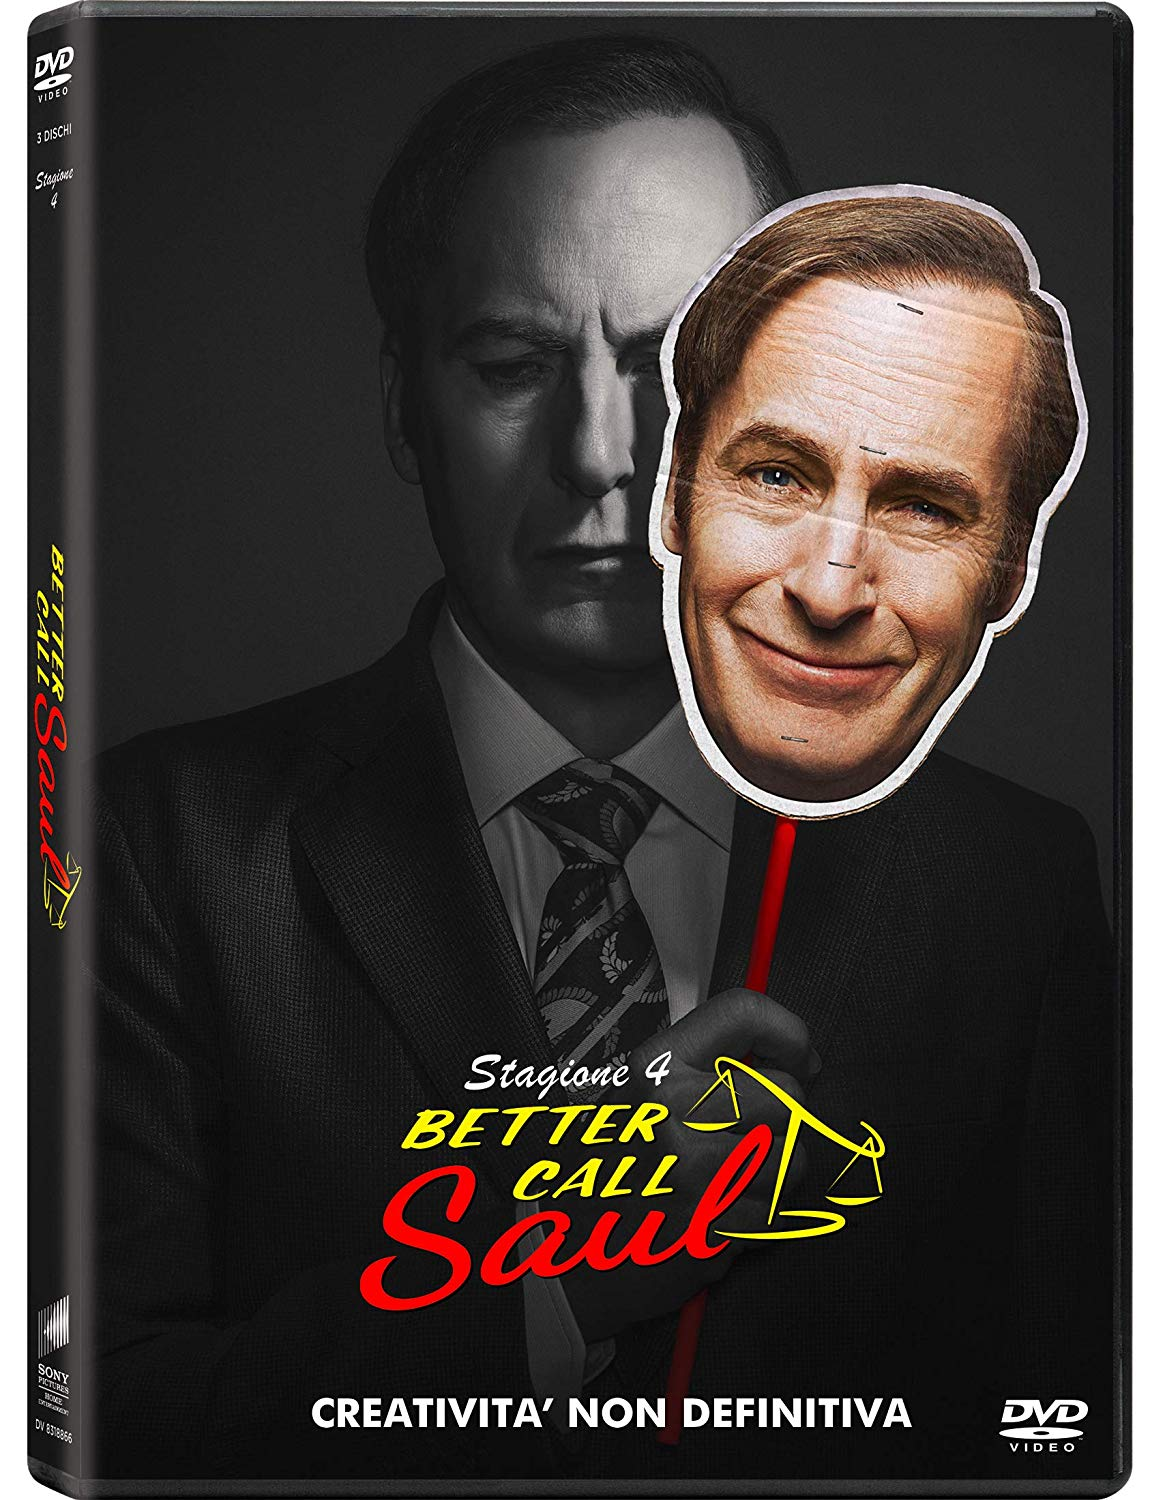 COF.BETTER CALL SAUL - STAGIONE 04 (3 DVD) (DVD)